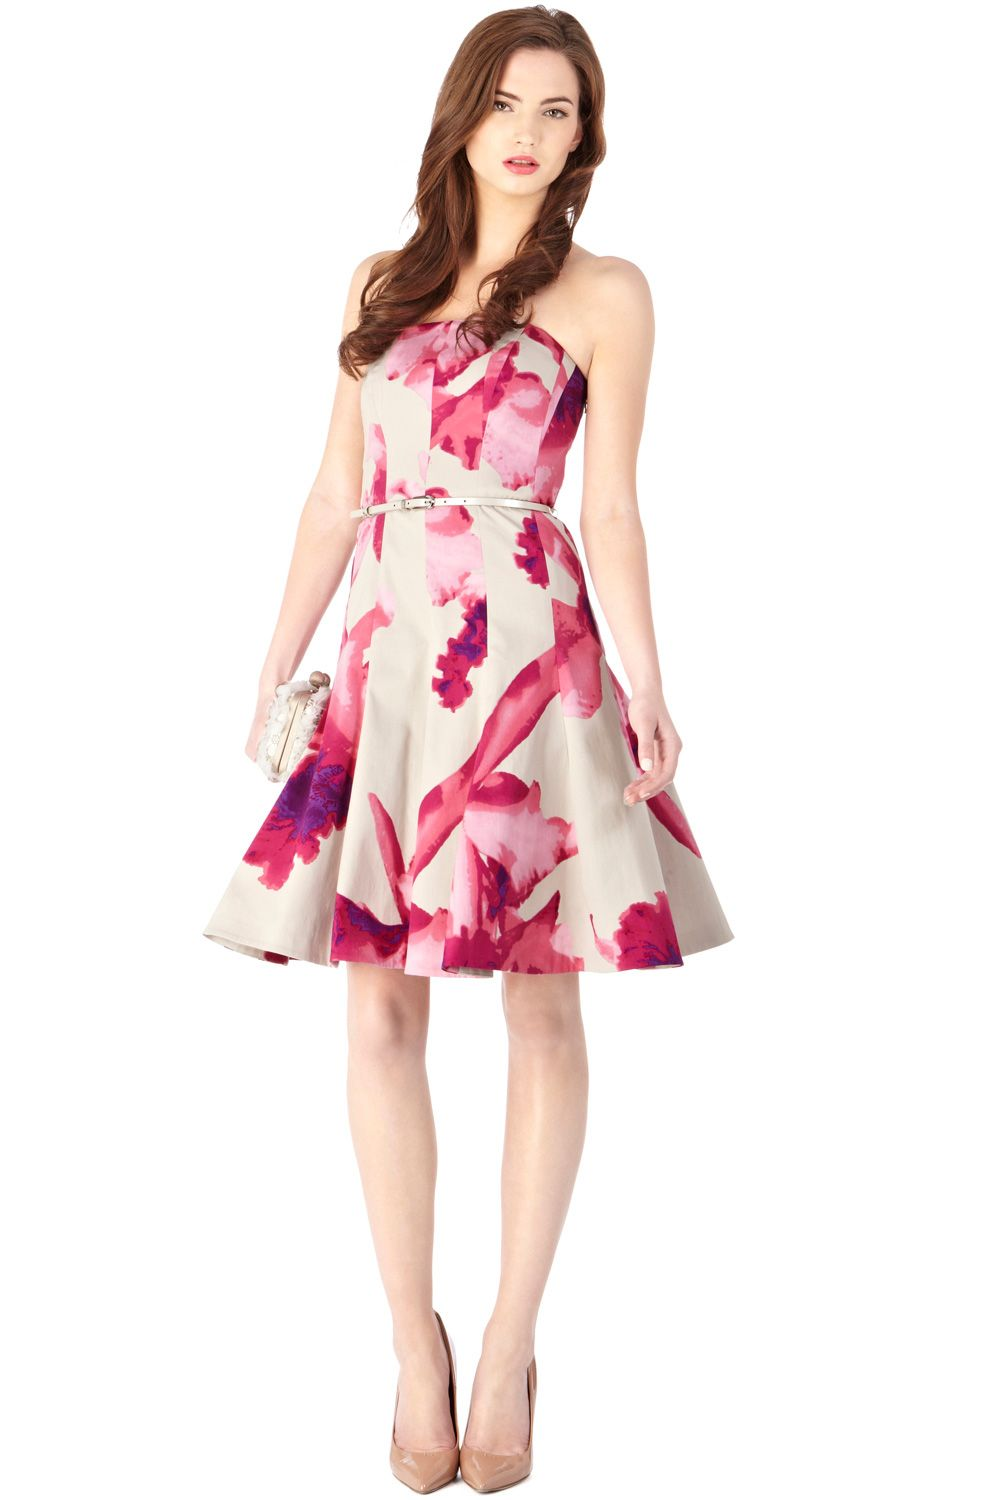 Flower Power! Floral Wedding Guest Dresses